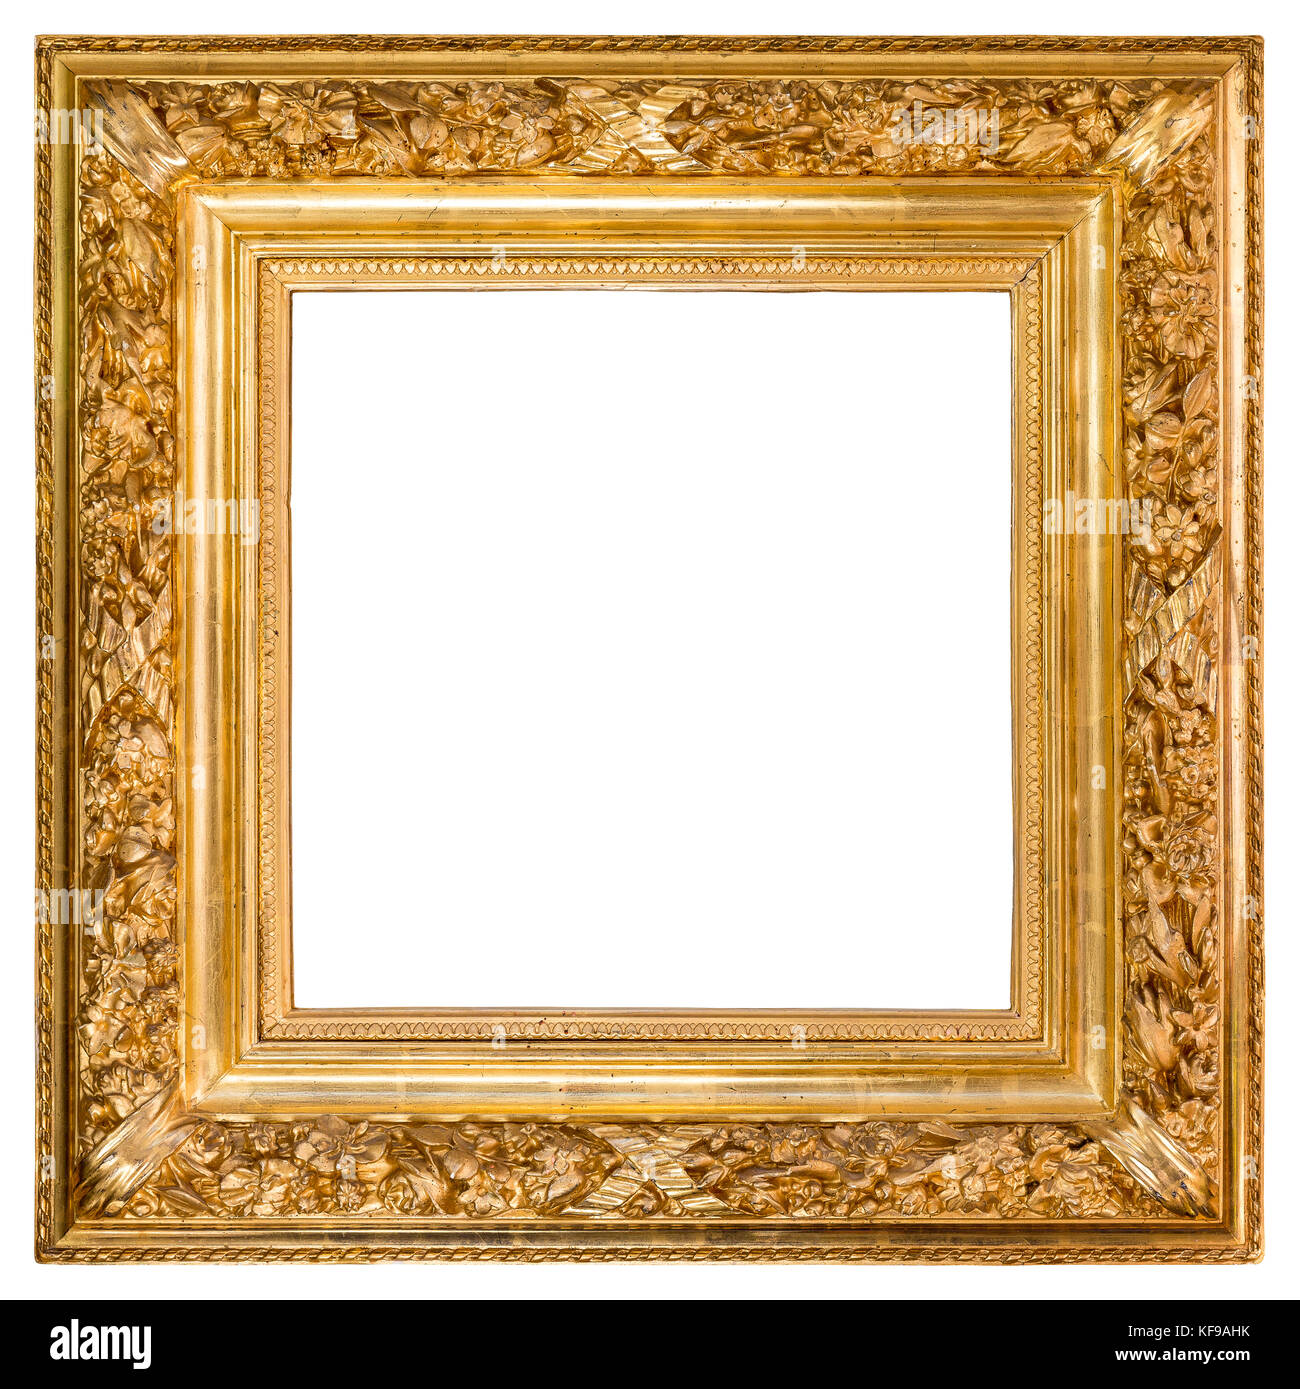 Isolated gold wood frame over white background with clipping path included. - Stock Image